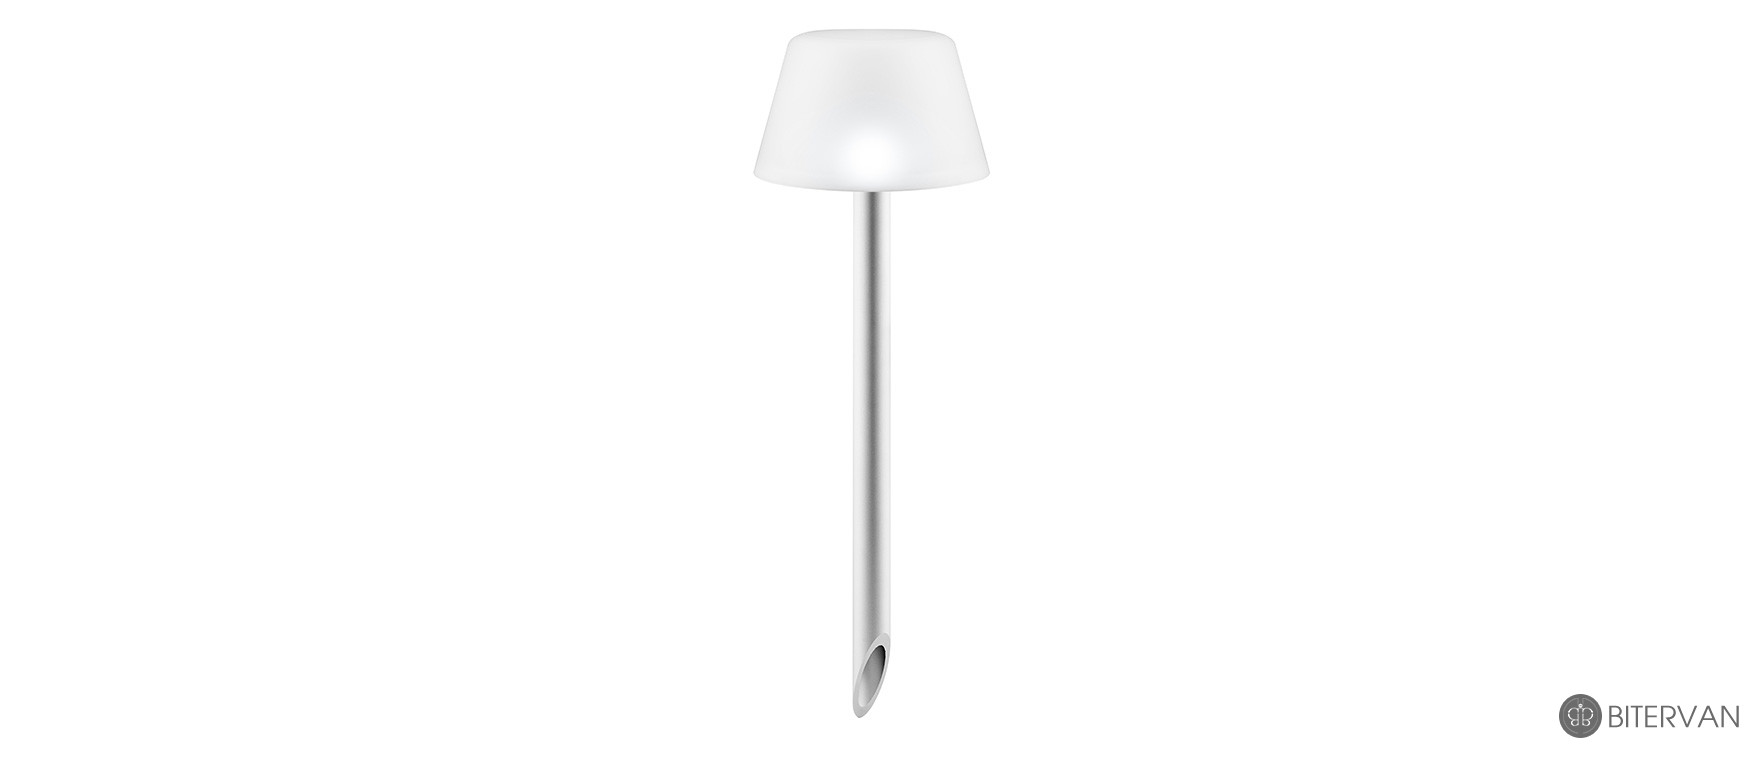 eva solo, Sunlight lamp with spike, 38 cm